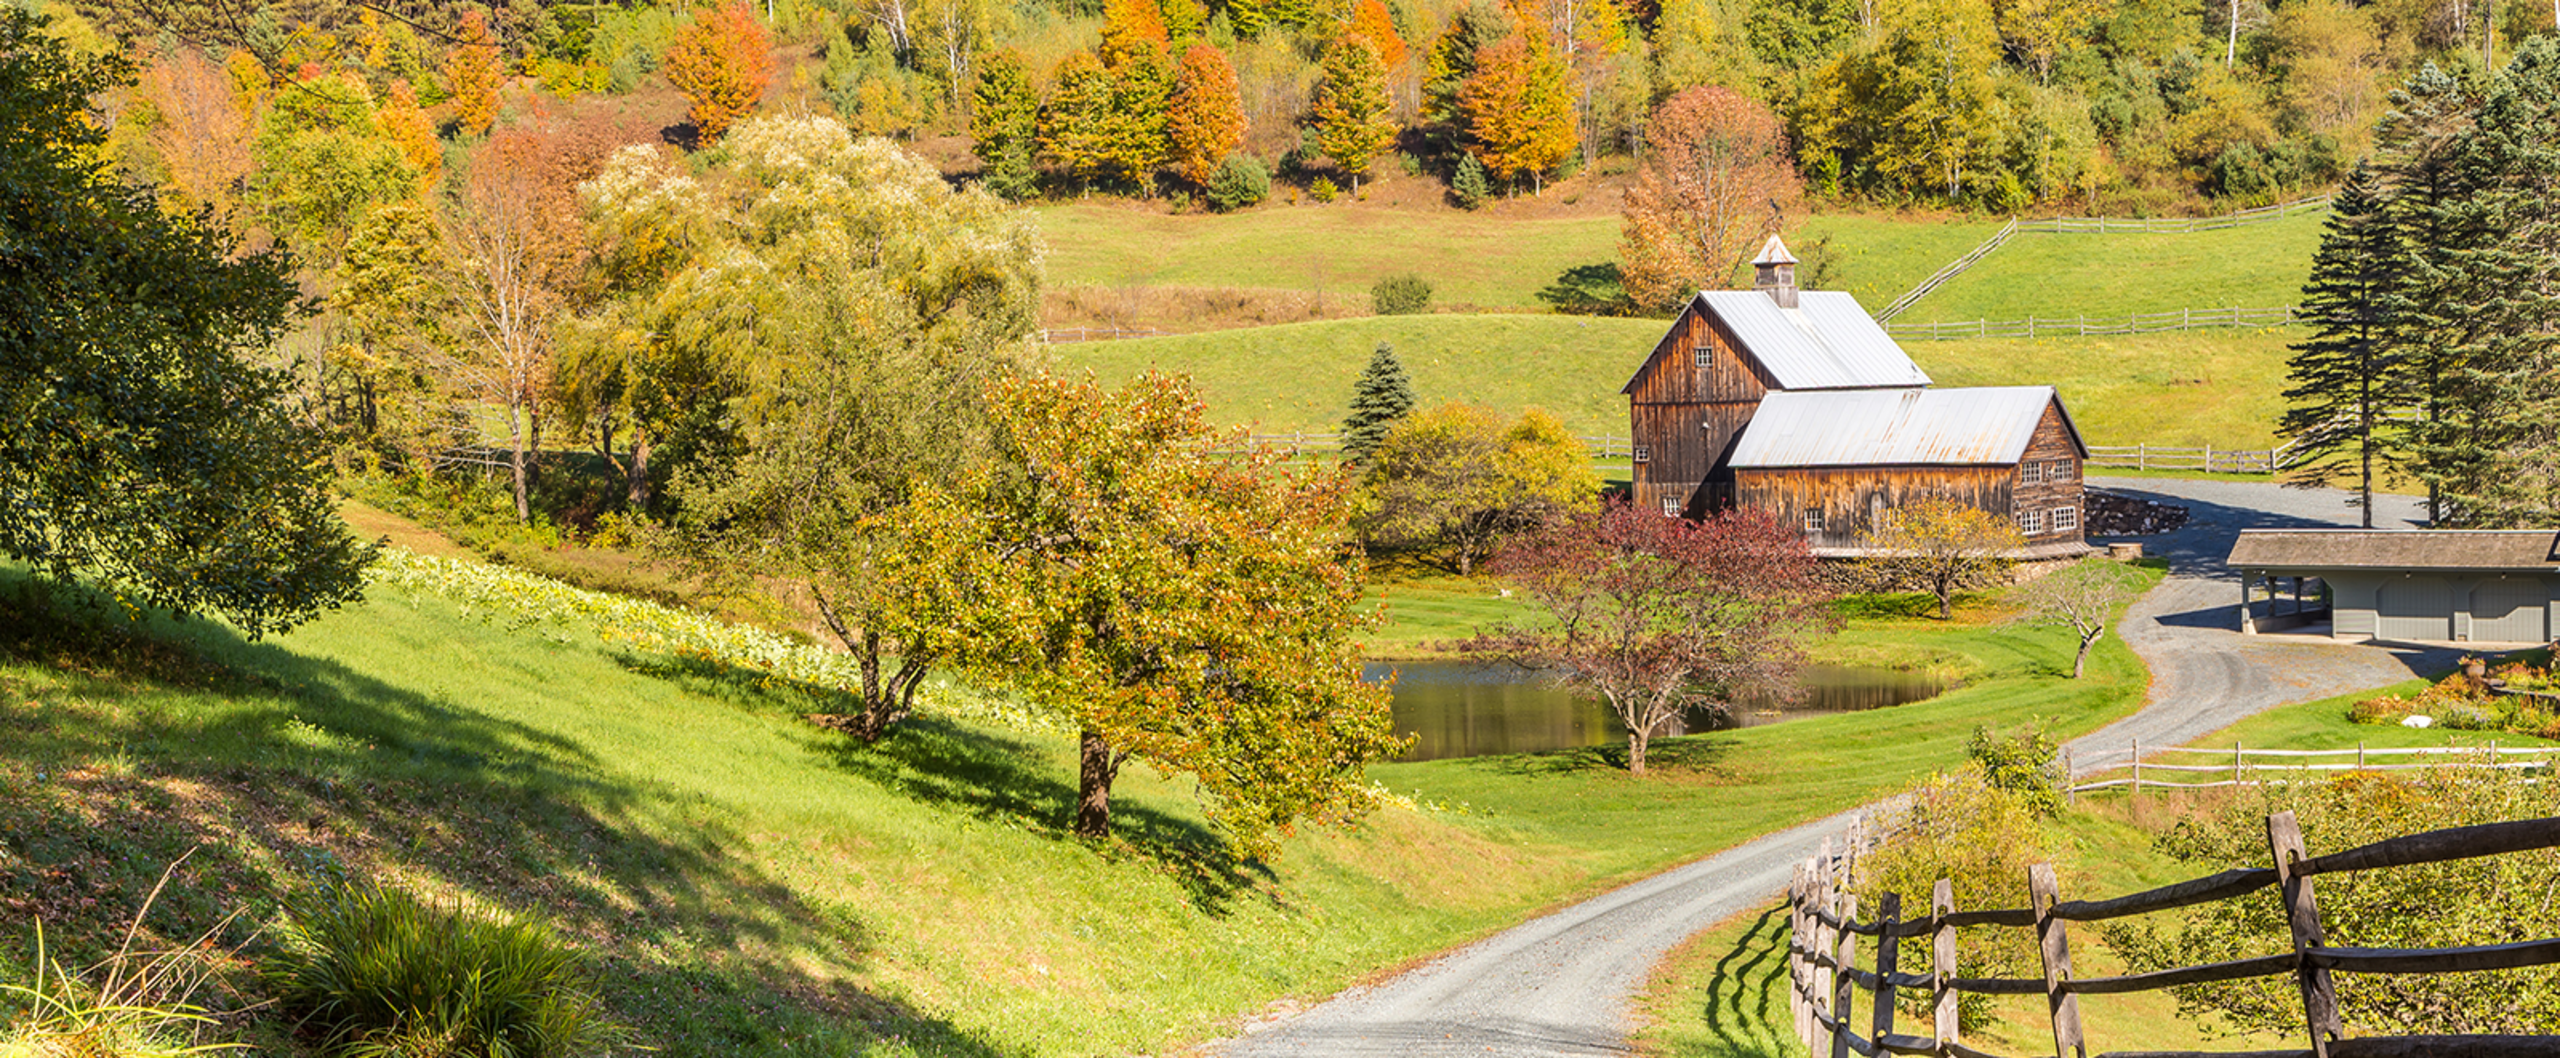 Country Homes Try our Real Estate App